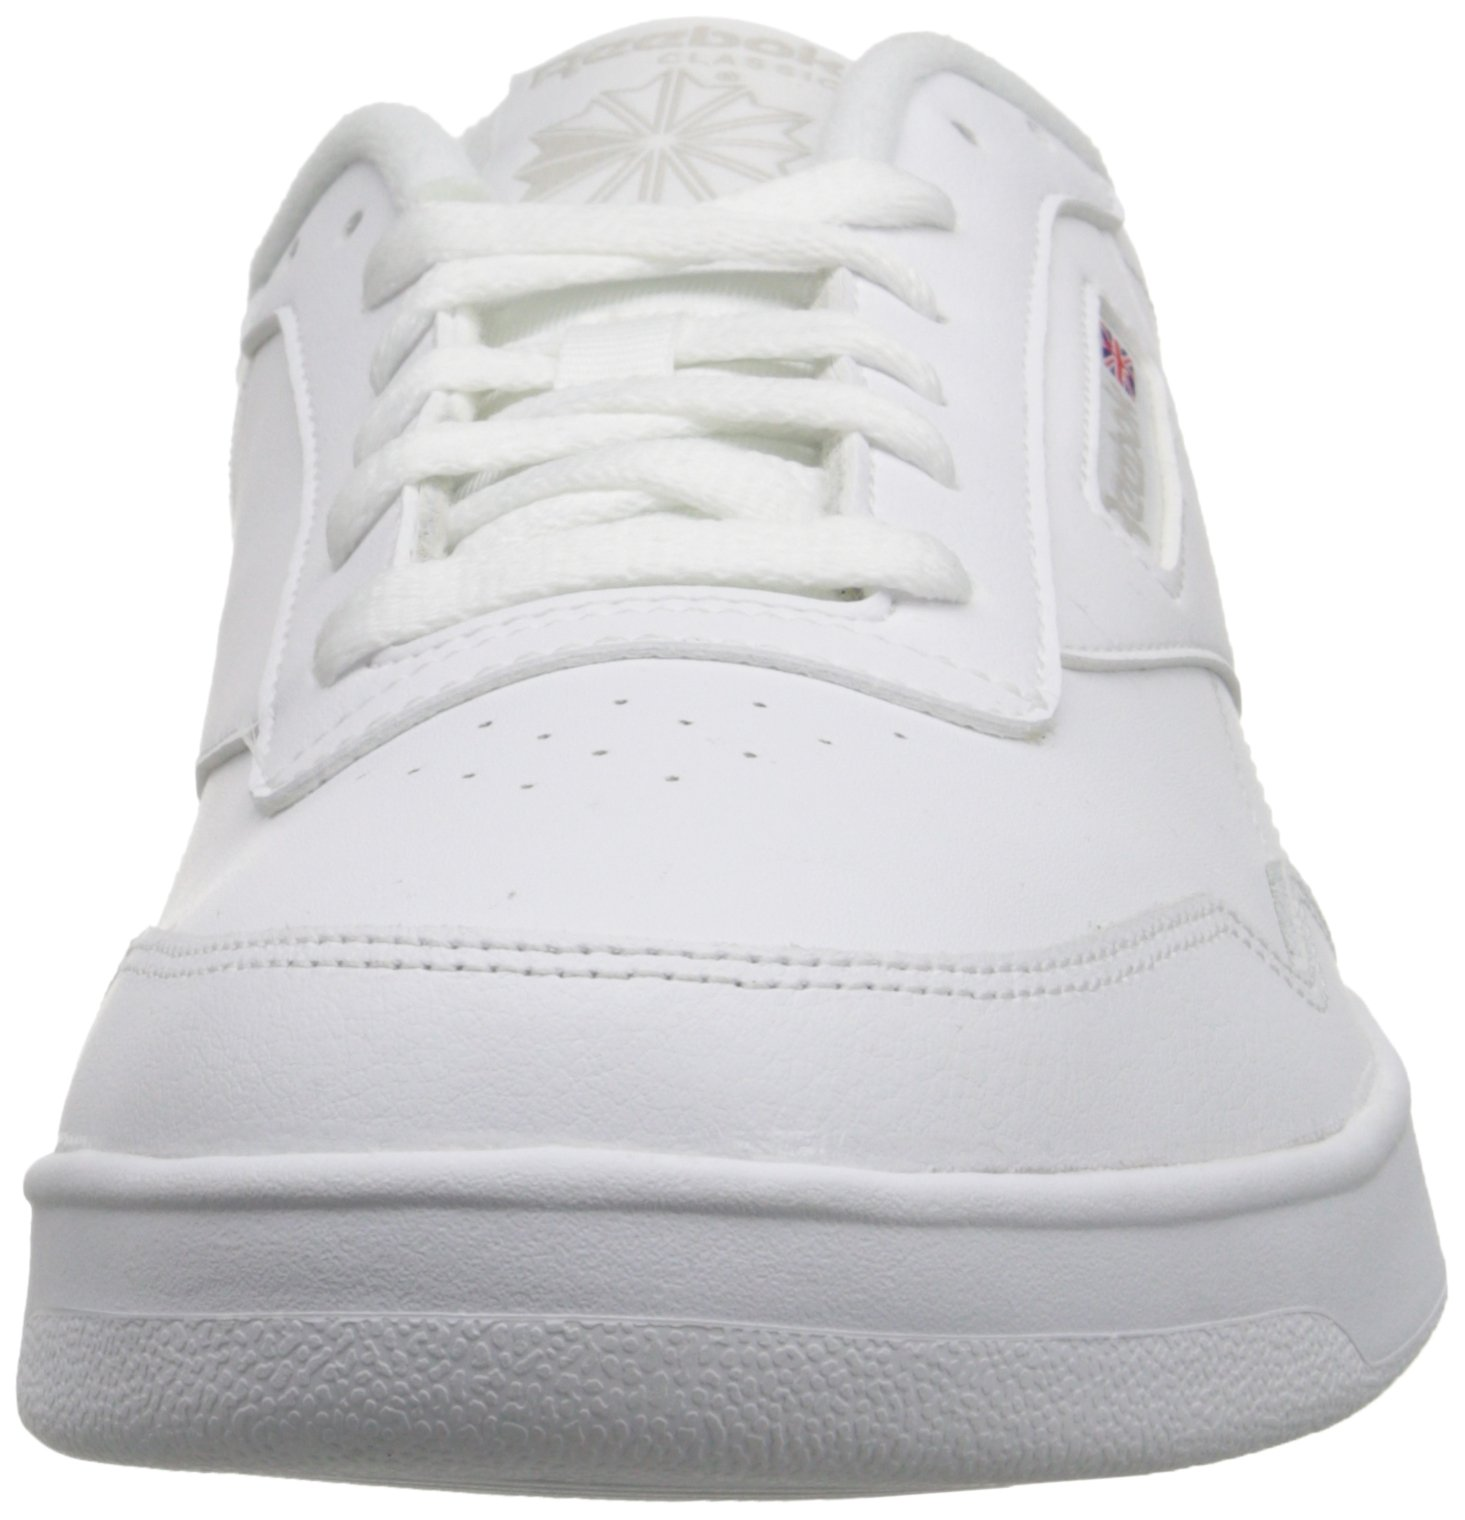 Reebok Men's Club Memt Fashion Sneaker, White/Steel, 9 4E US